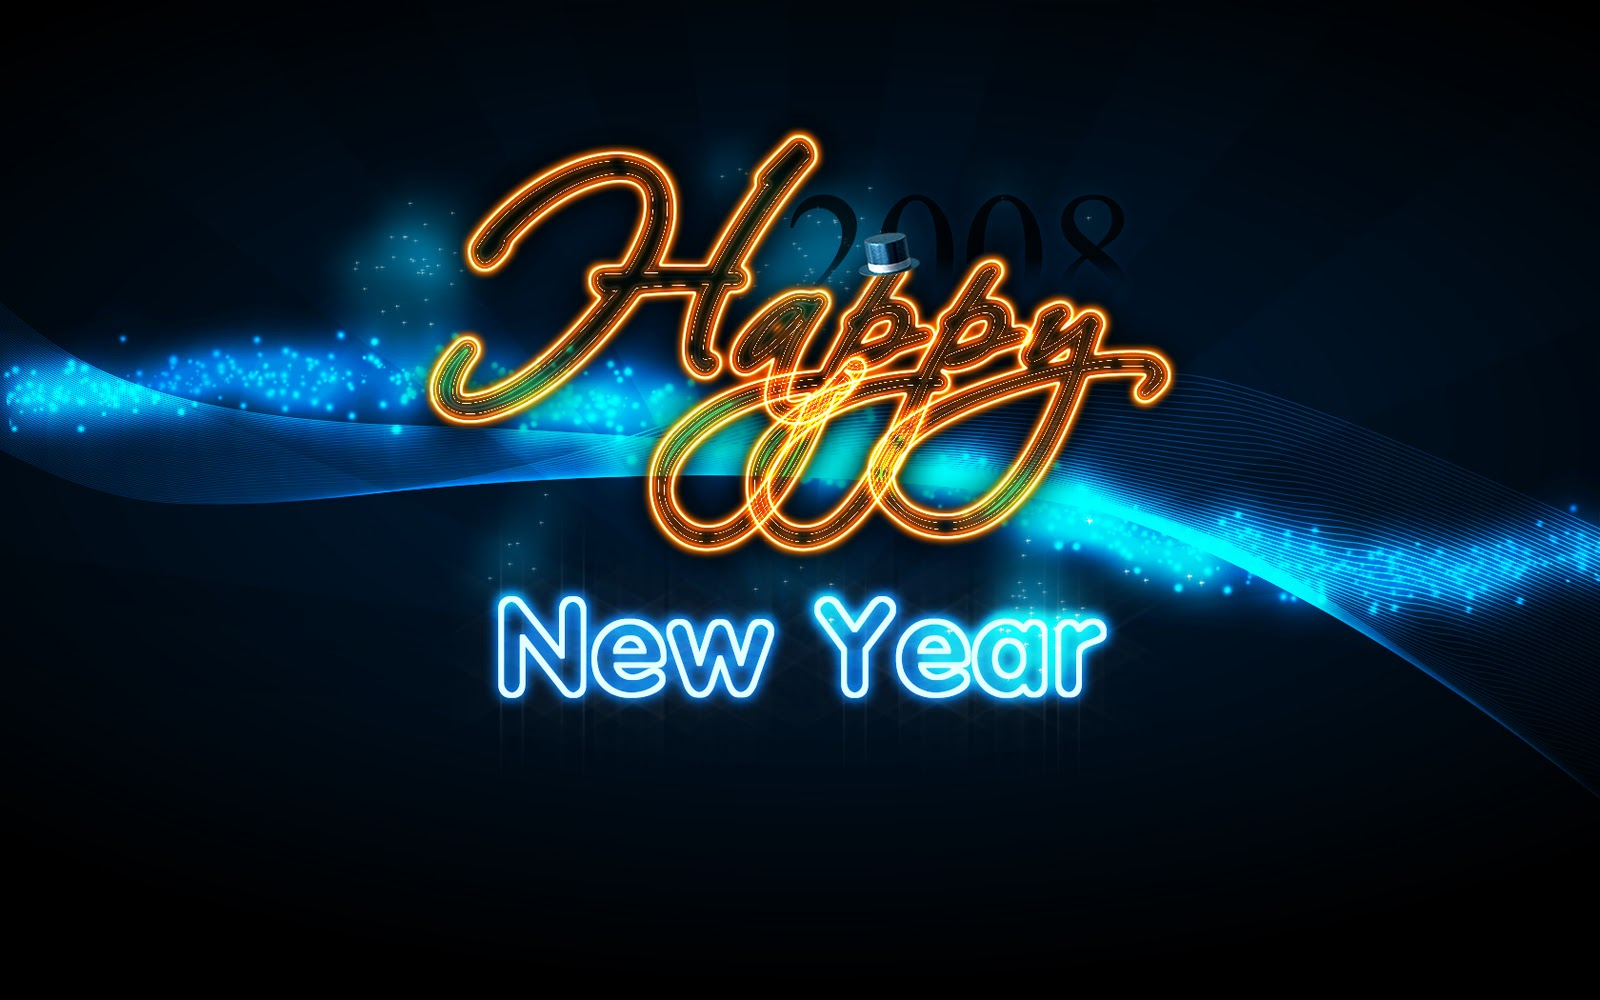 http2bpblogspotcom 2heqjrd7iaaultbrpqg_hi happy new year 2013 wallpapers